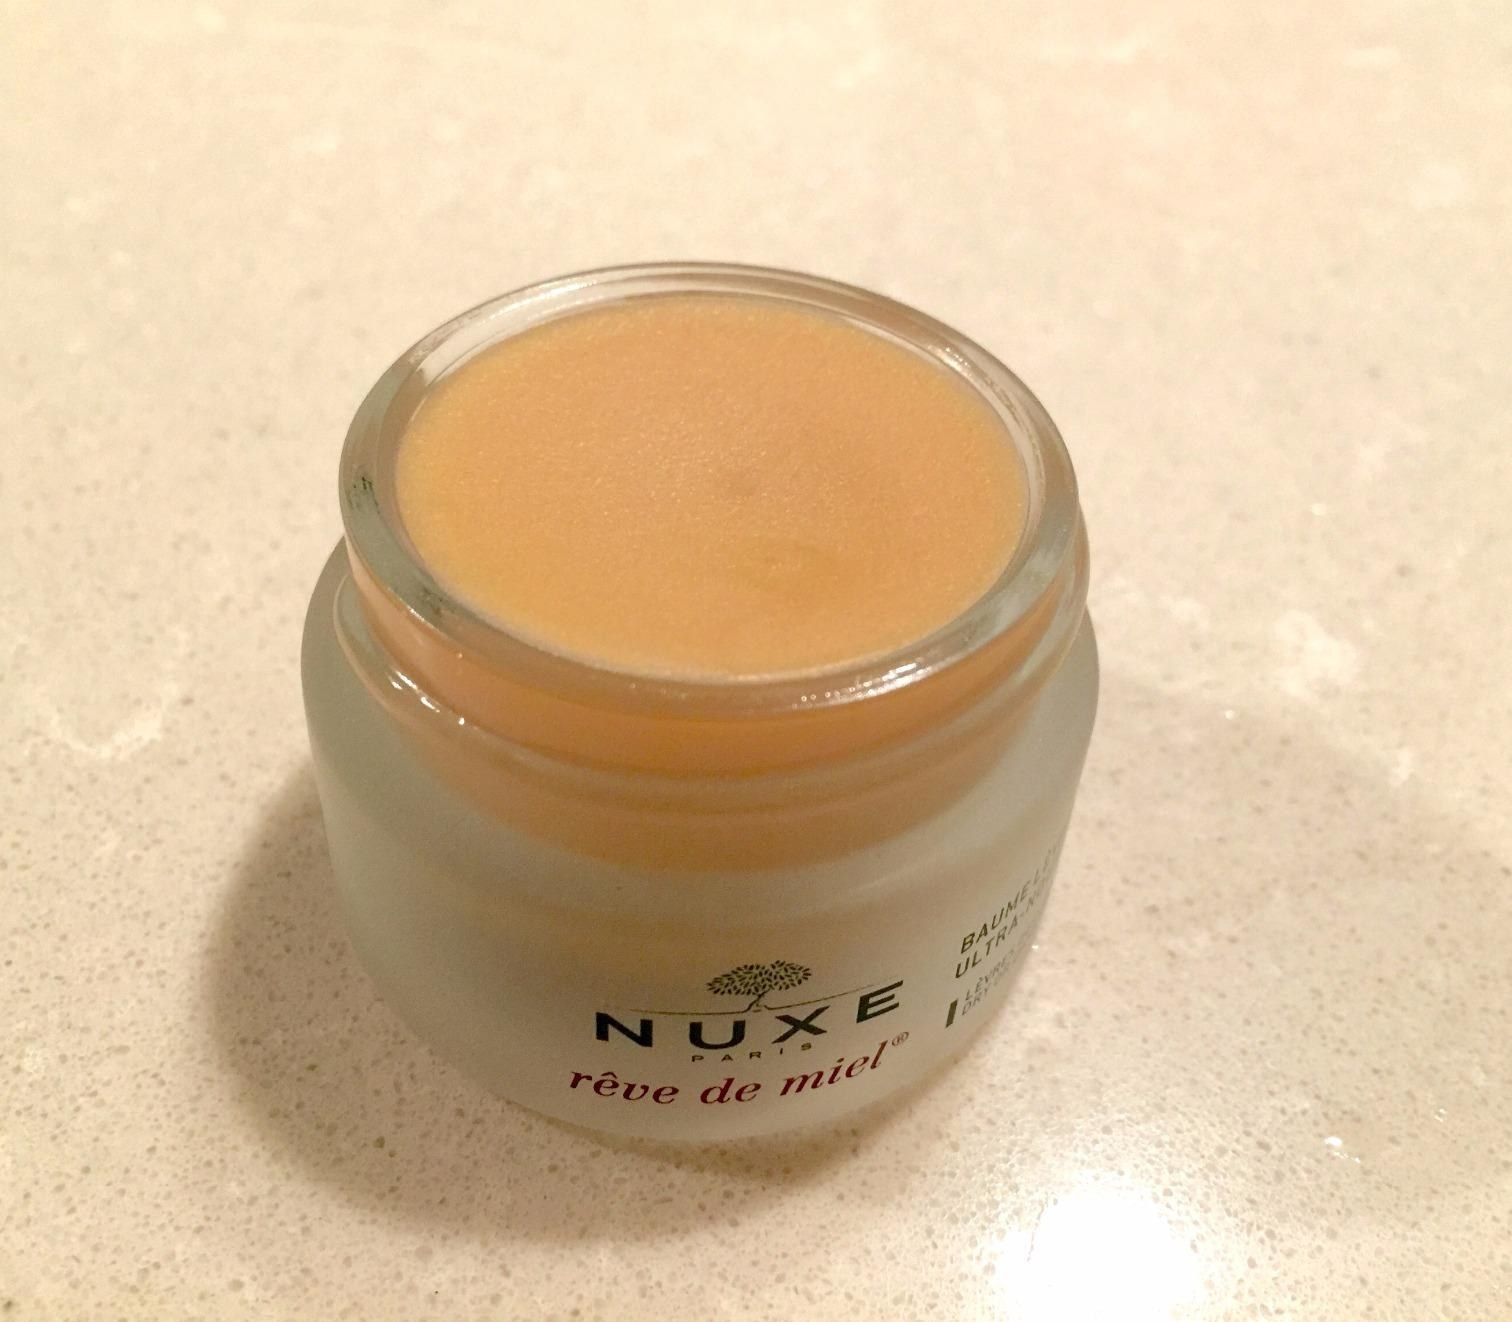 Reviewer photo of the lip balm, which comes in a small pot